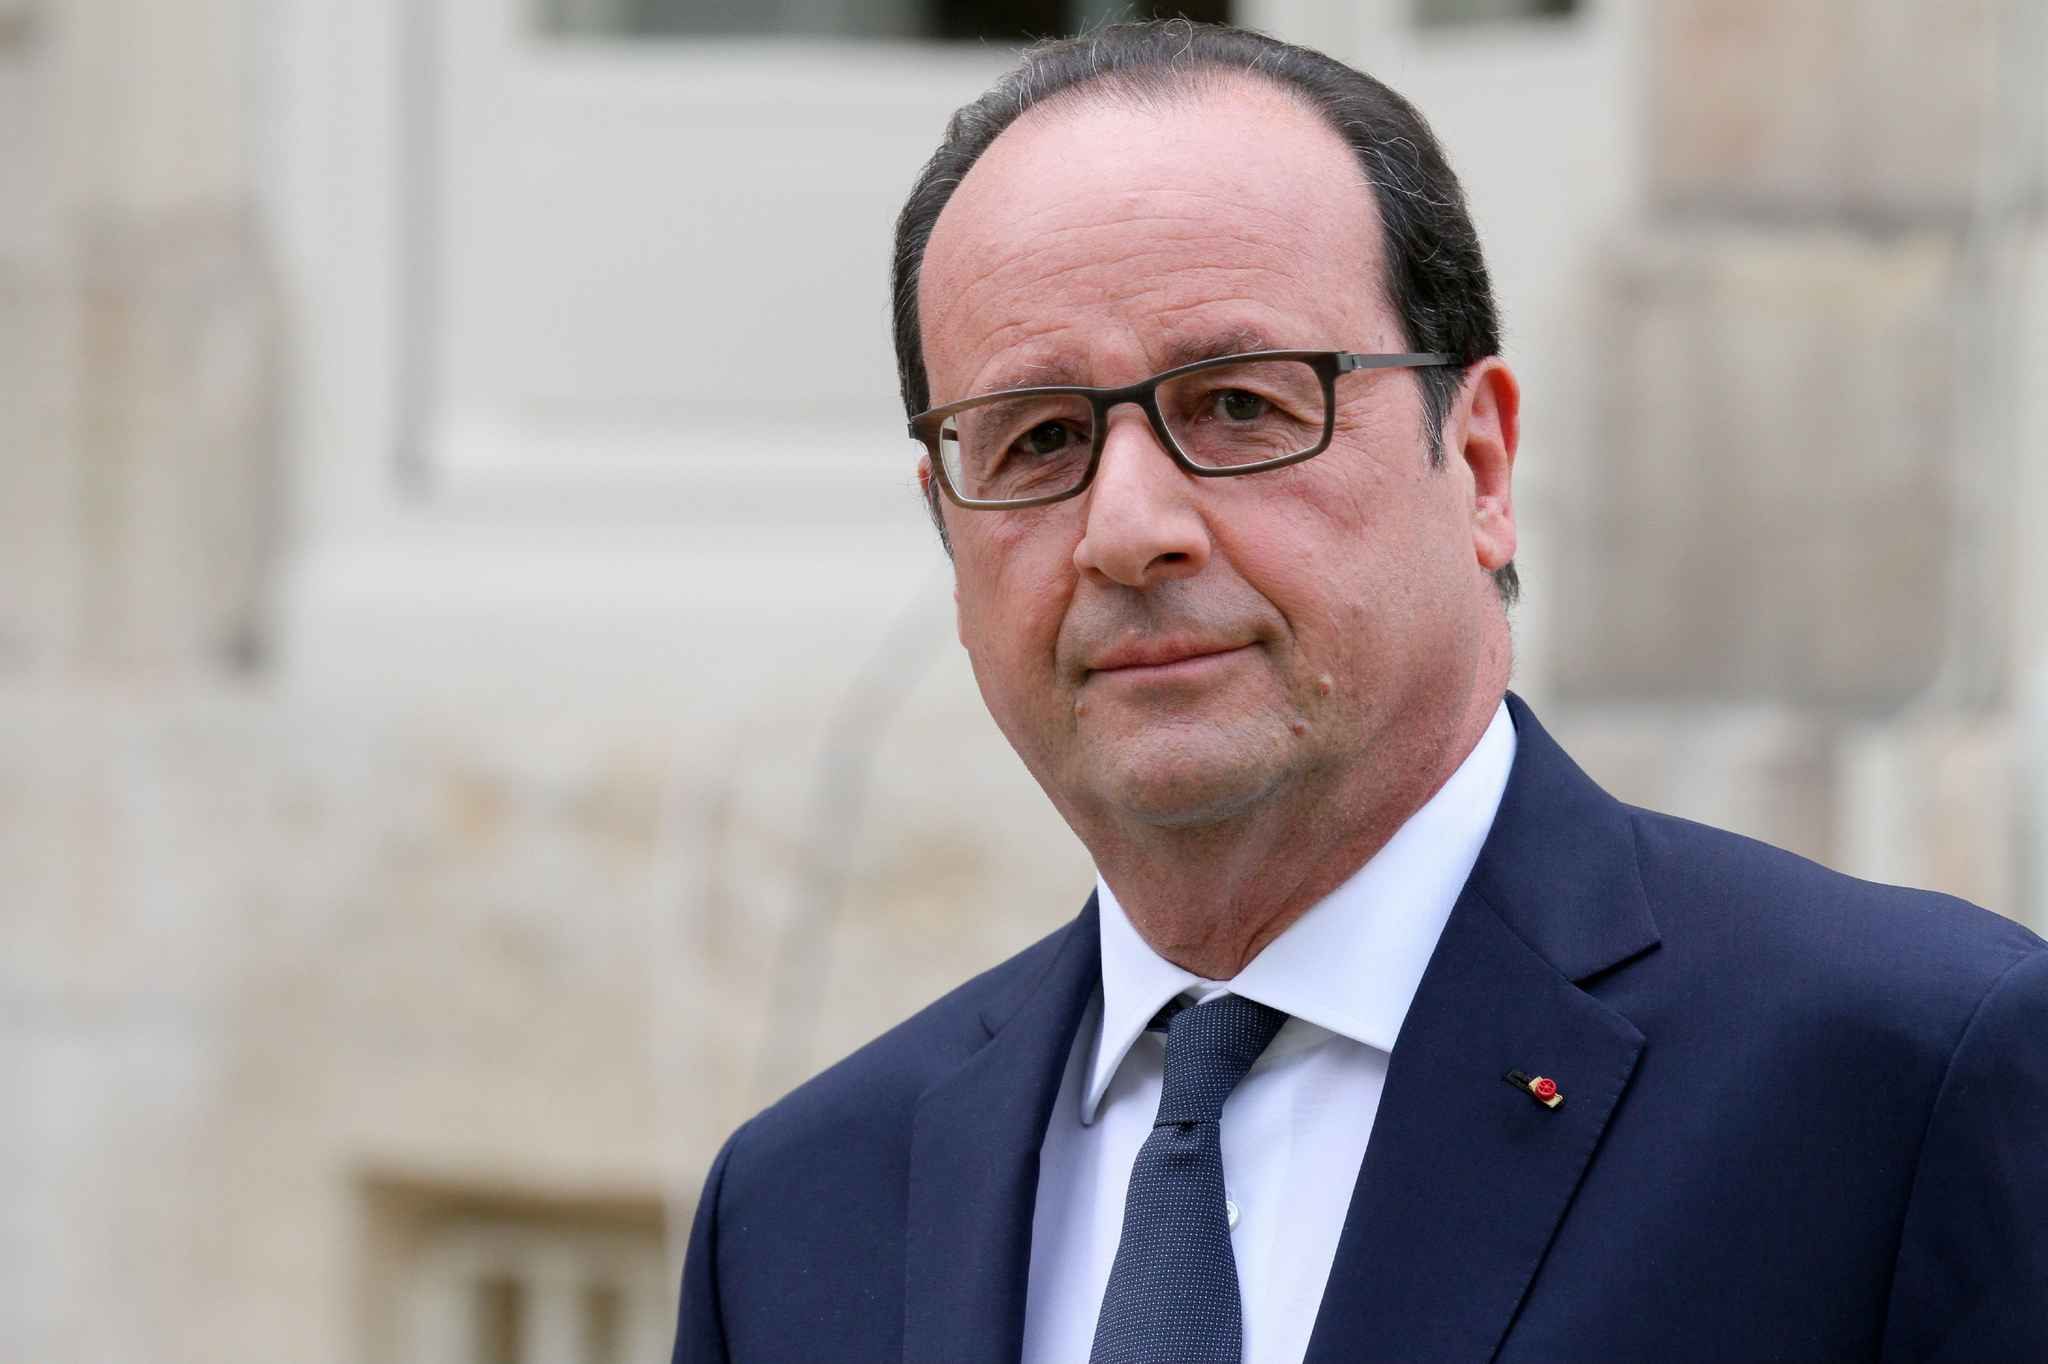 Hollande-RO-IBNA.jpg